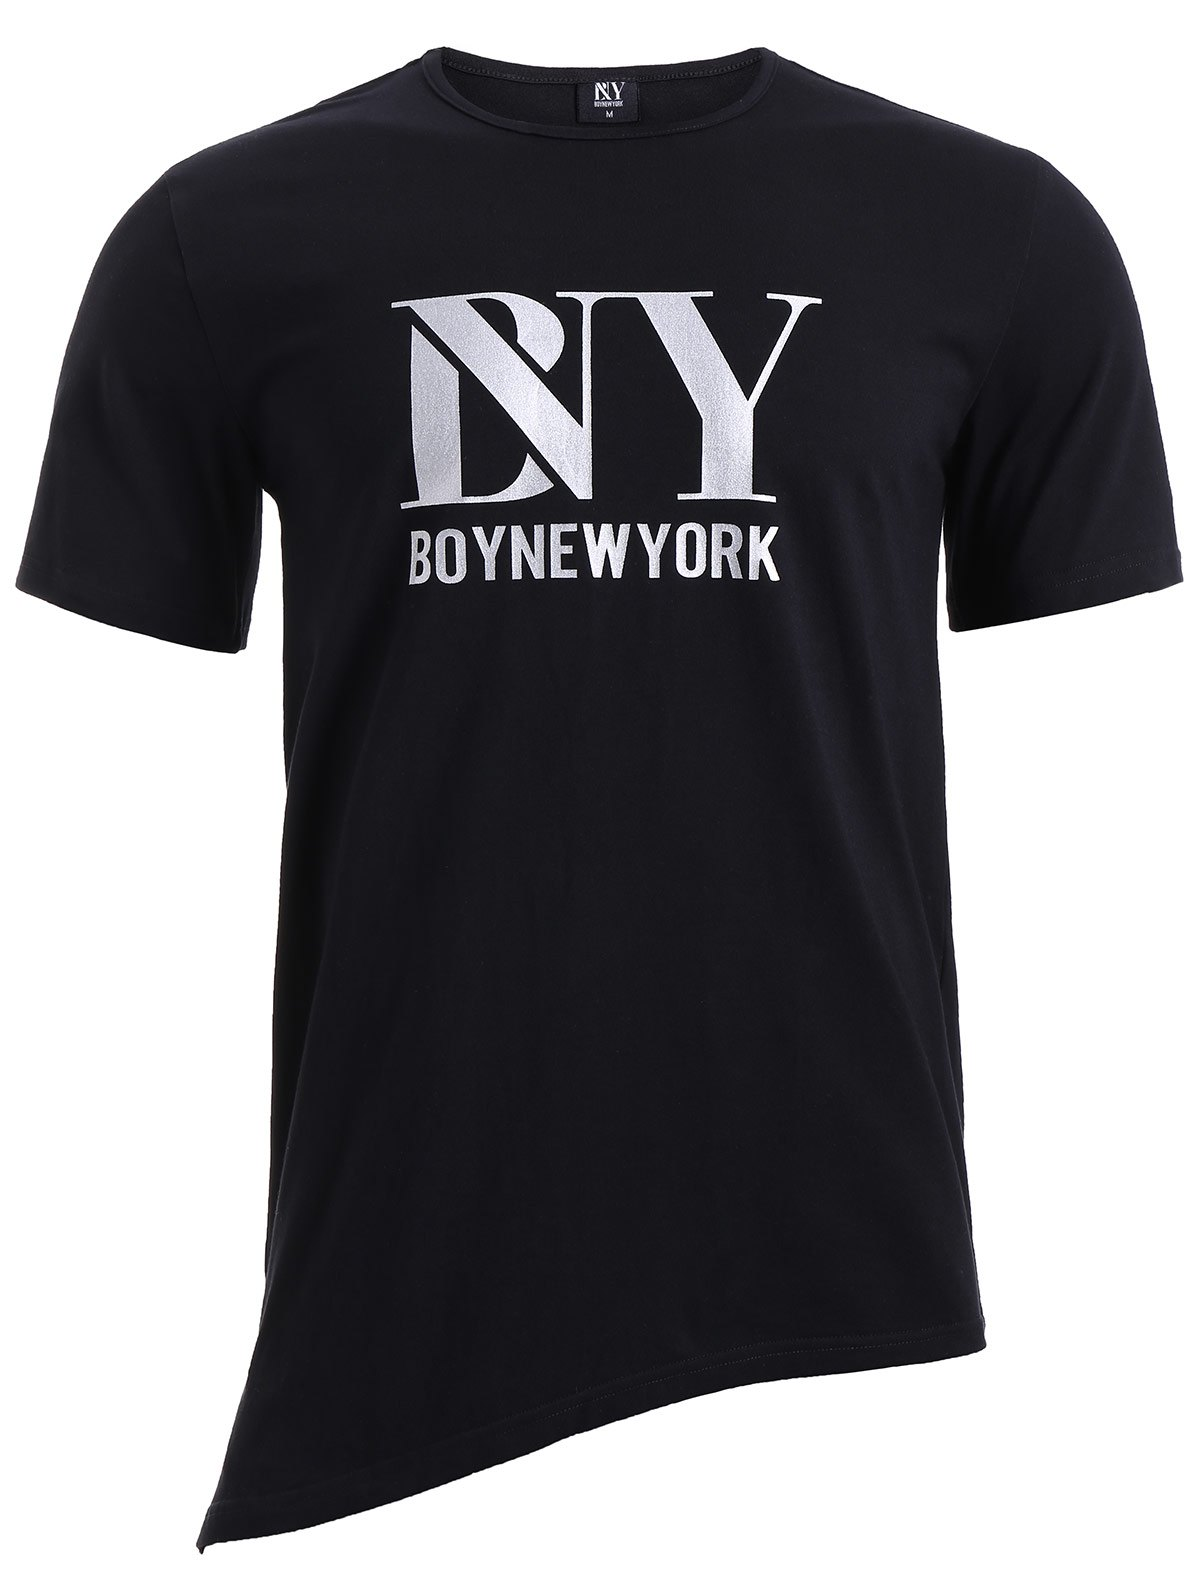 Shop BoyNewYork Asymmetric Hem Short Sleeves T-Shirt